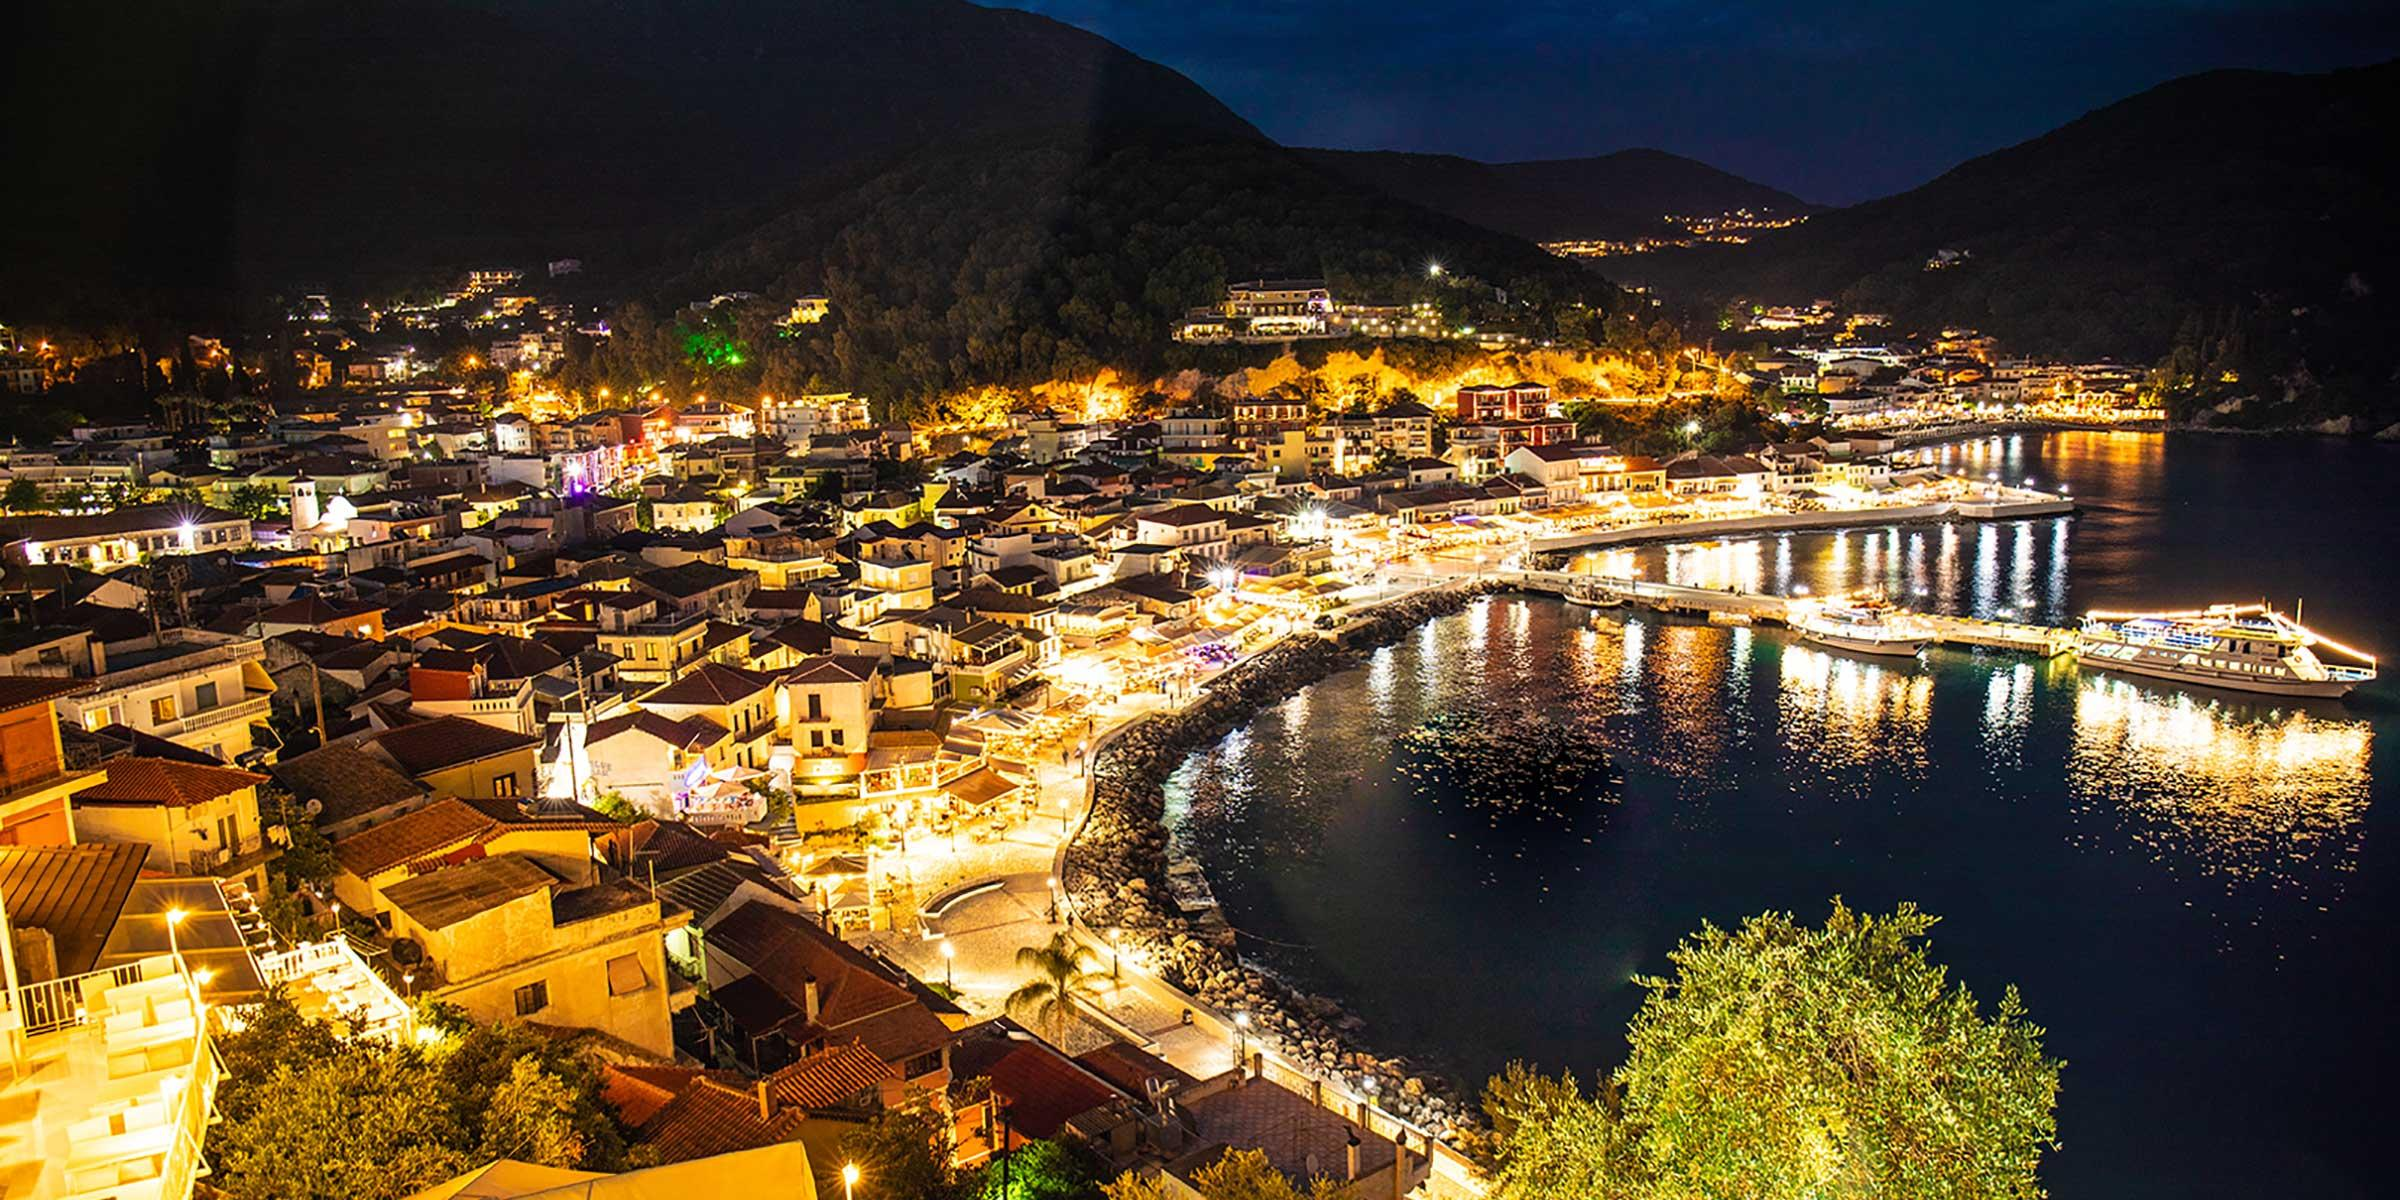 View of Corfu in Greece at Night